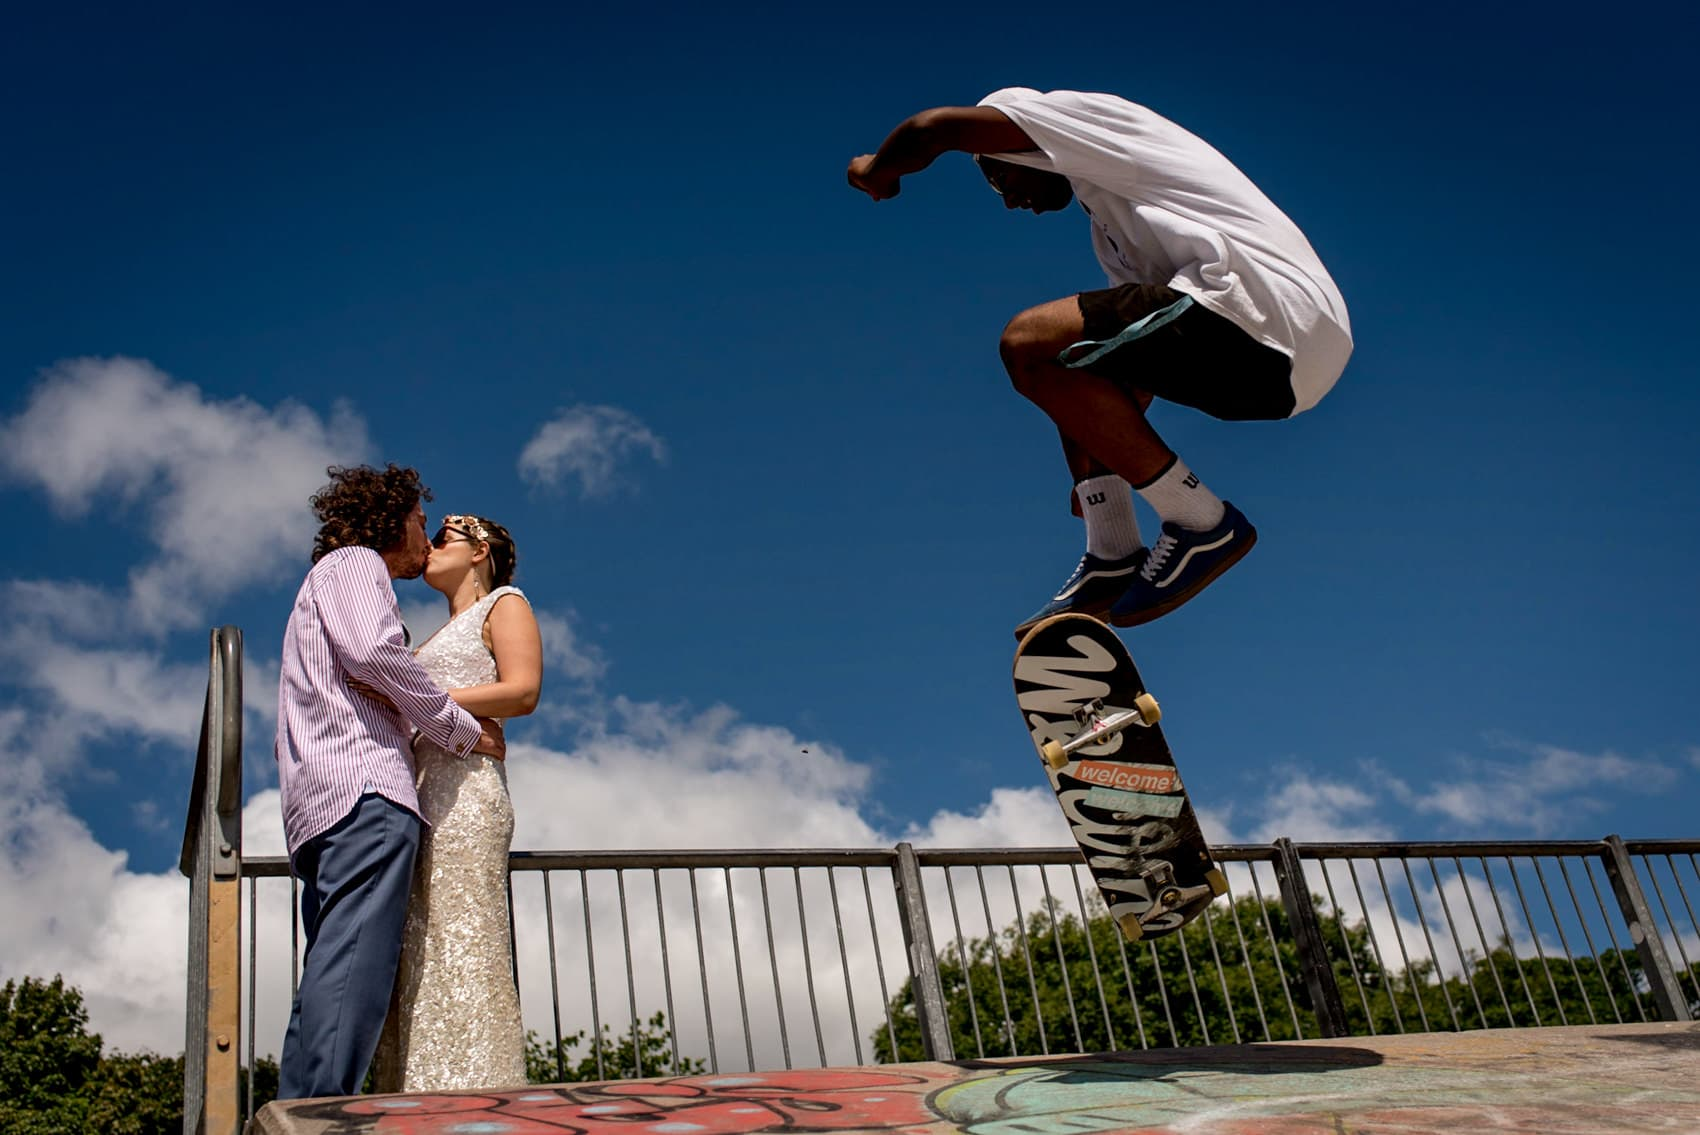 alternative bride and groom skateboarding portrait